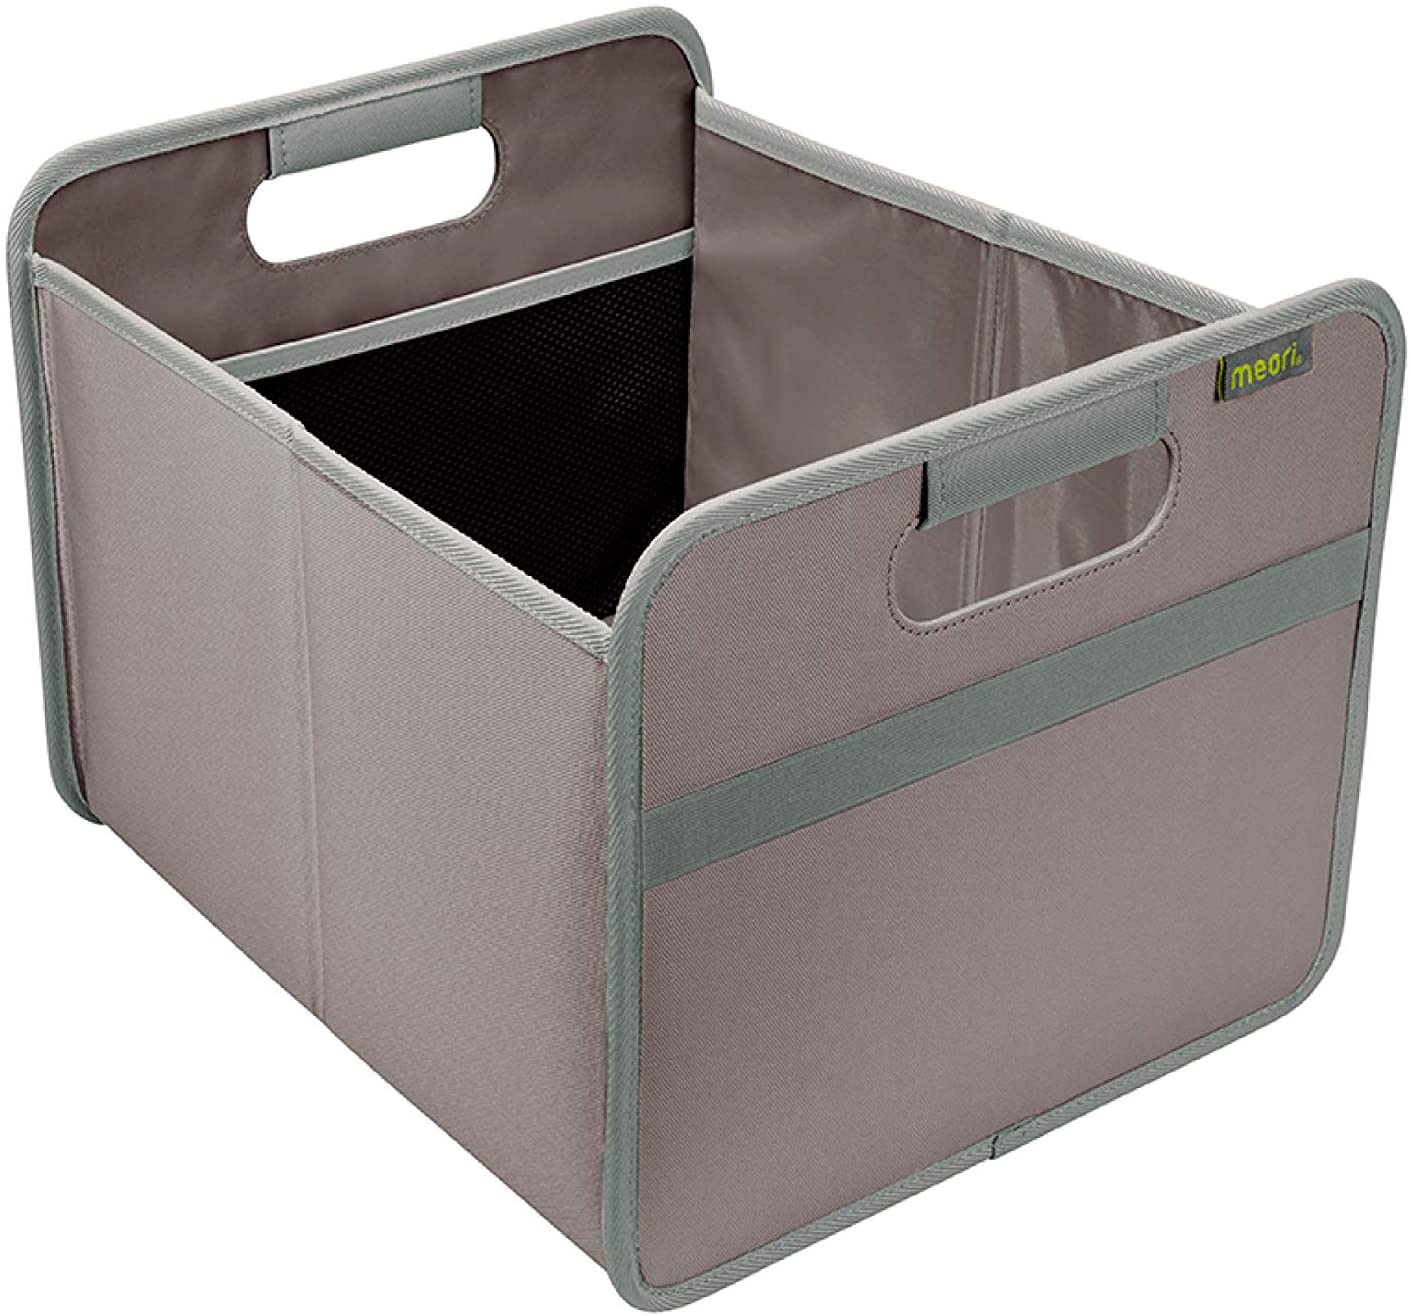 meori Palm Taupe/Pantry Clever Containers Closet Nursery Linens Towels Farmers Market up to 65lbs Medium Foldable Storage Box, 1-Pack